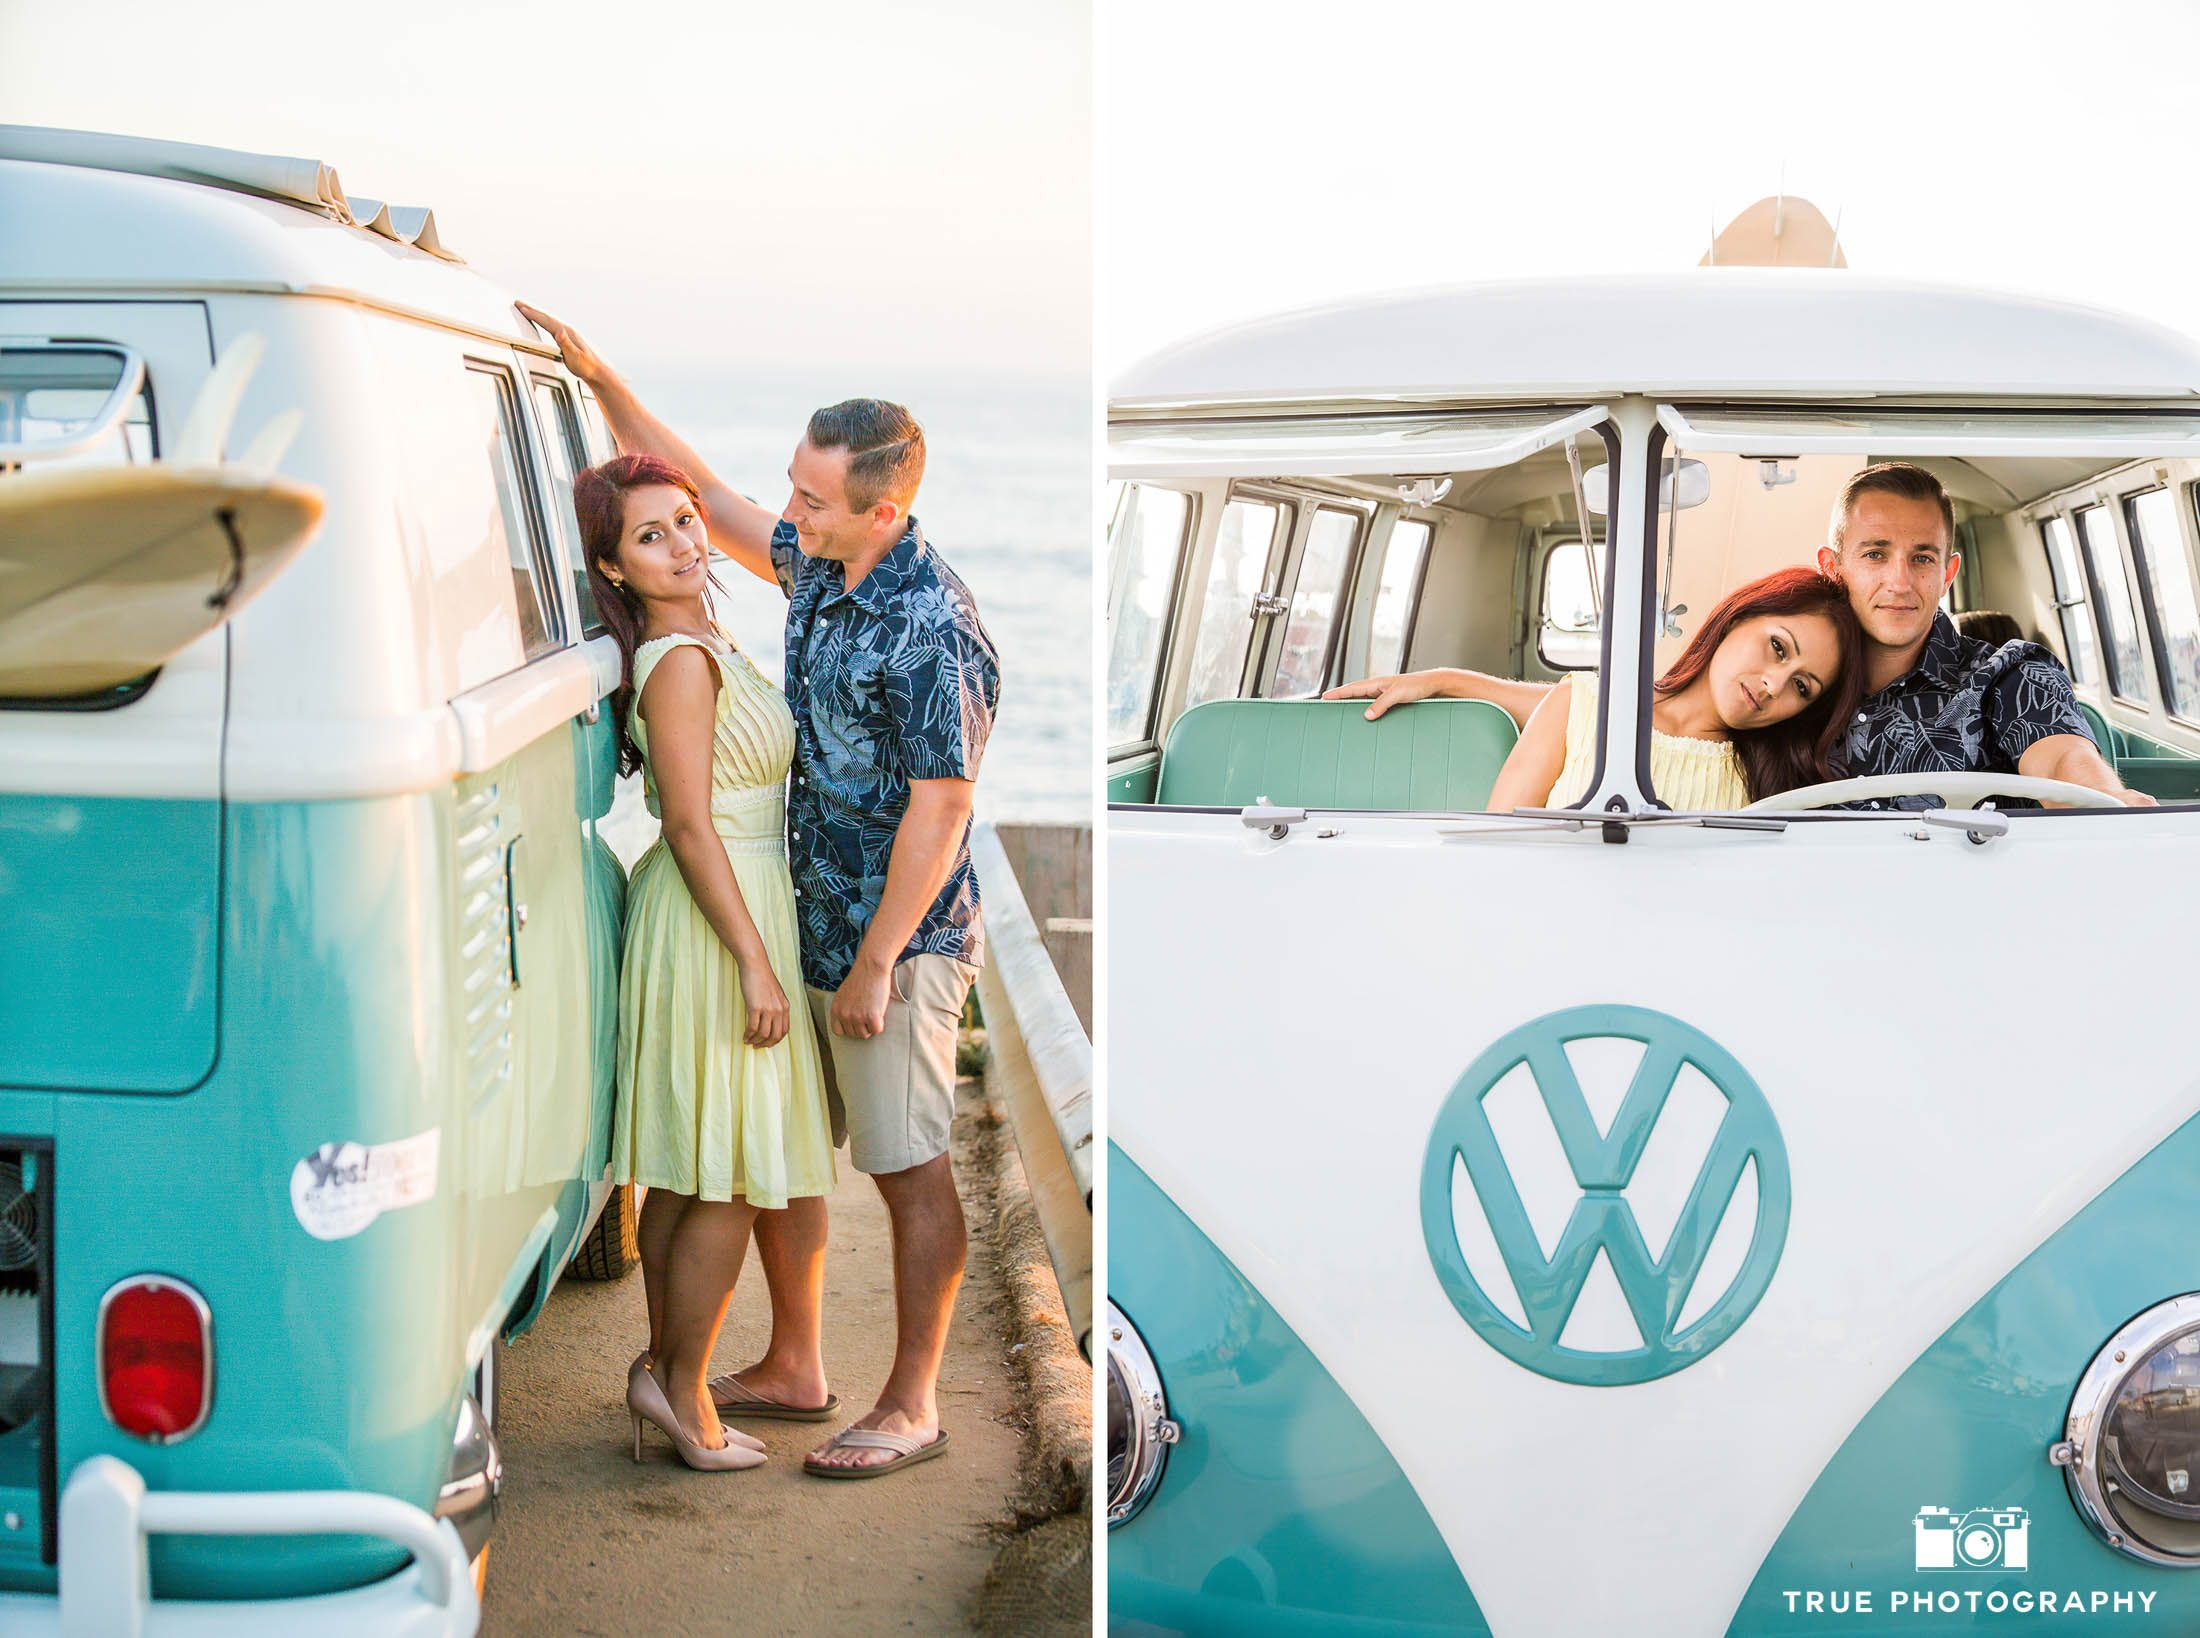 Two images of engaged couple leaning against and sitting in vintage Volkswagen bus on beach